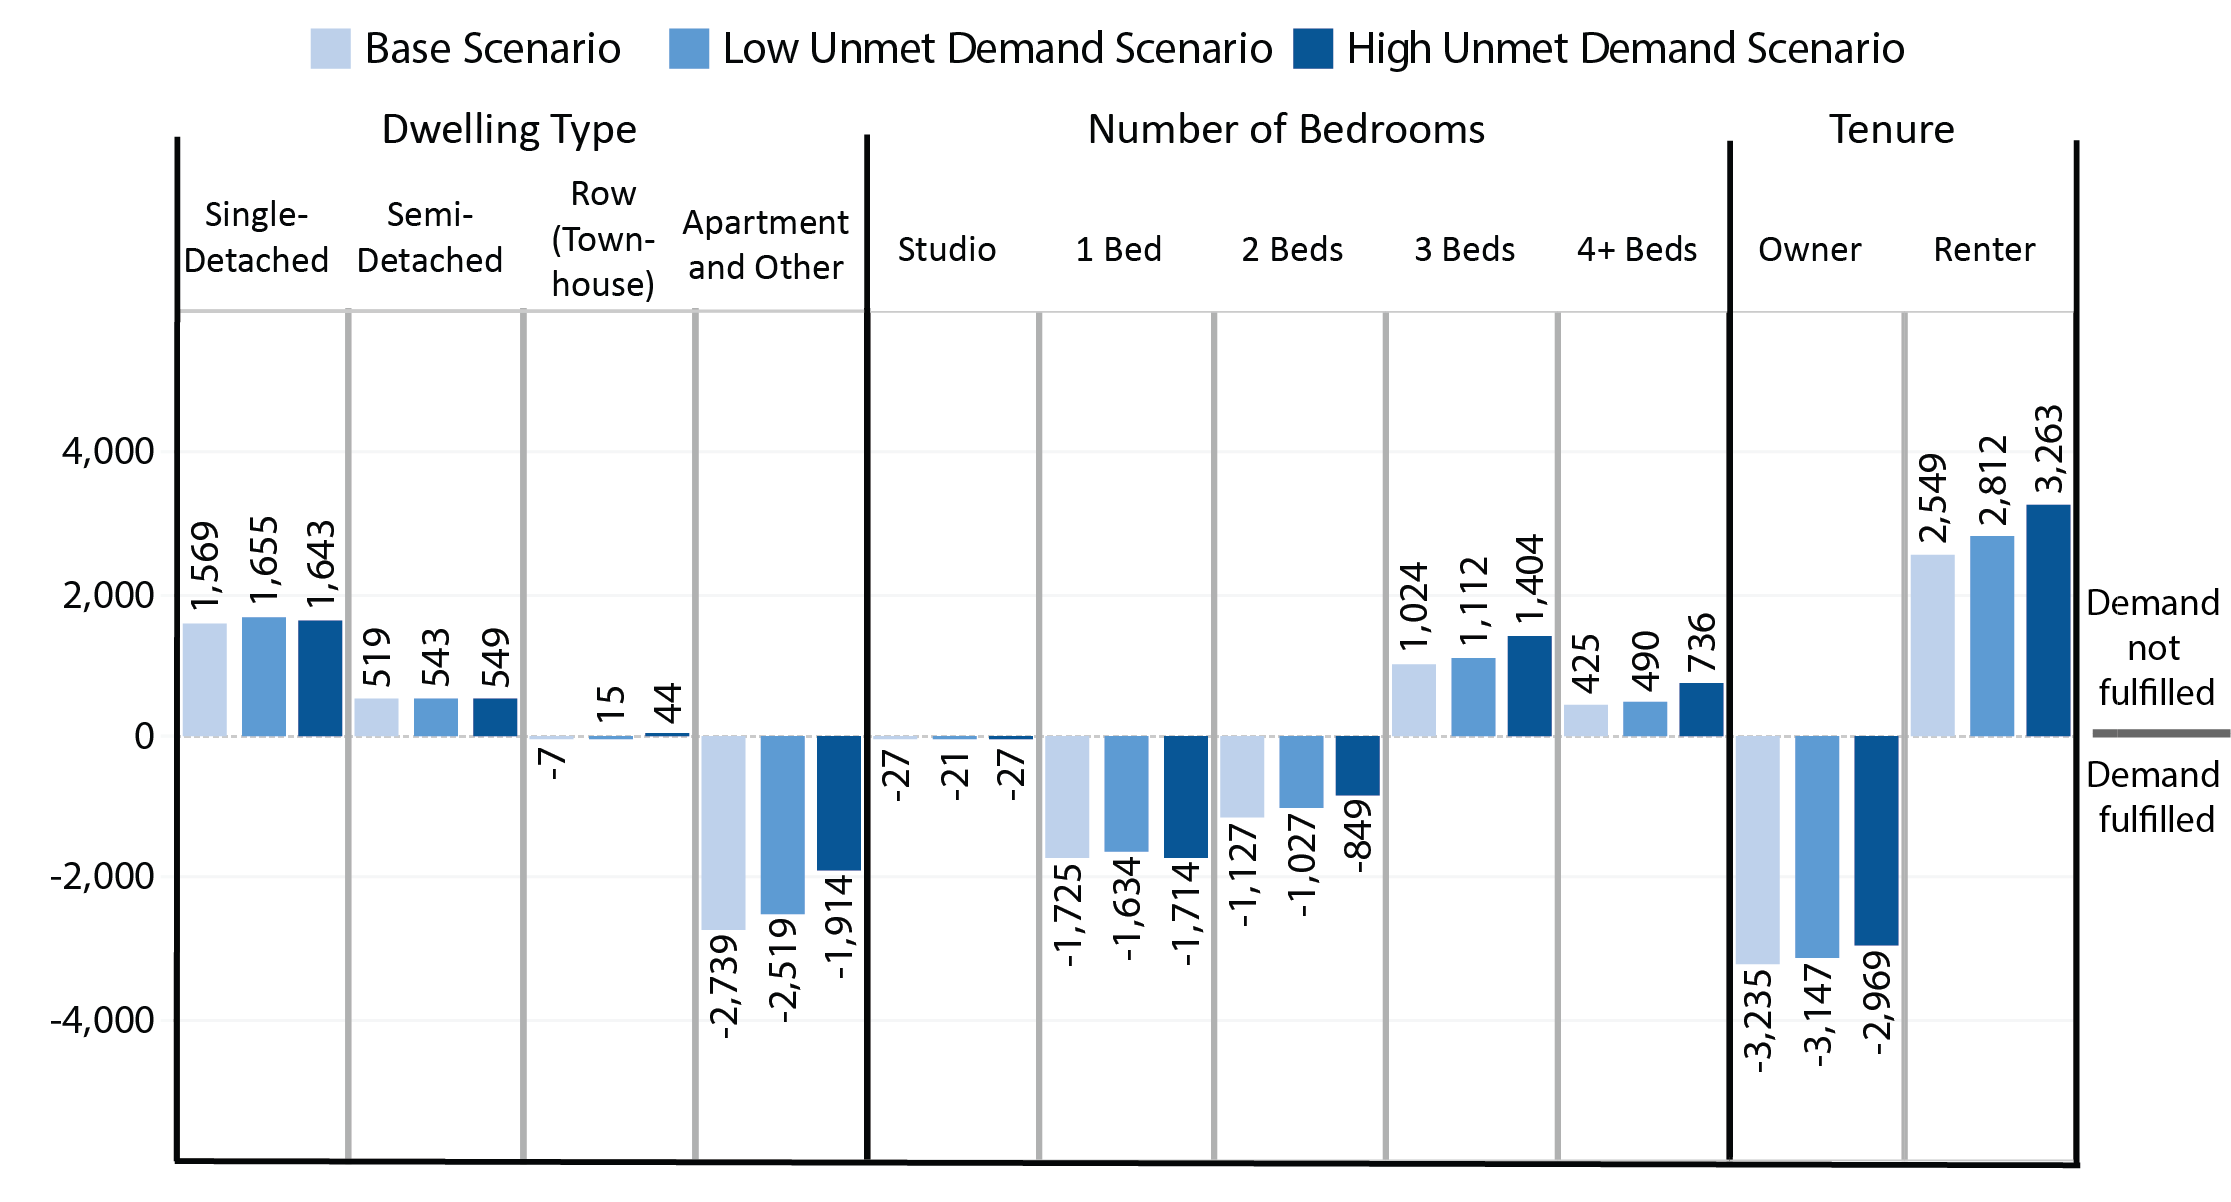 Column chart showing the annual number of additional completions required beyond recent annual completion trends to fulfill residual demand by tenure, showing scenario by colour. For more information please contact cityplanning@toronto.ca or call Hailey Toft at 416-392-8343.